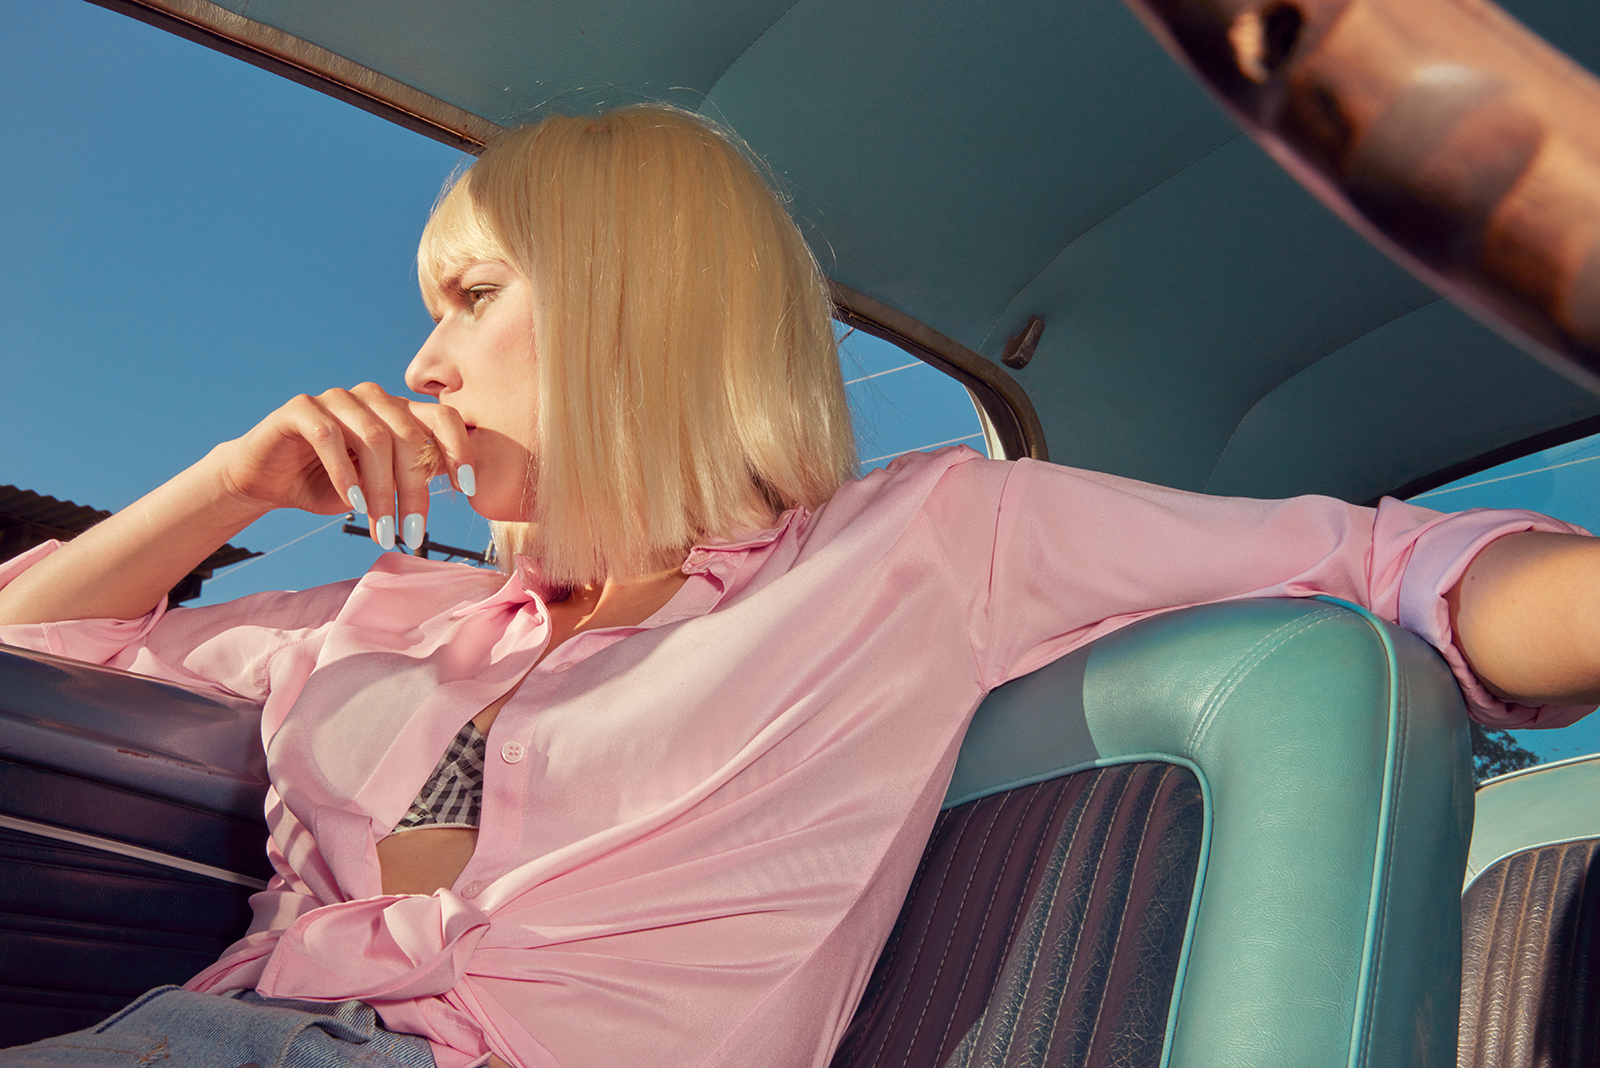 KOURTNEY ROY, your favourite Delinquent 19